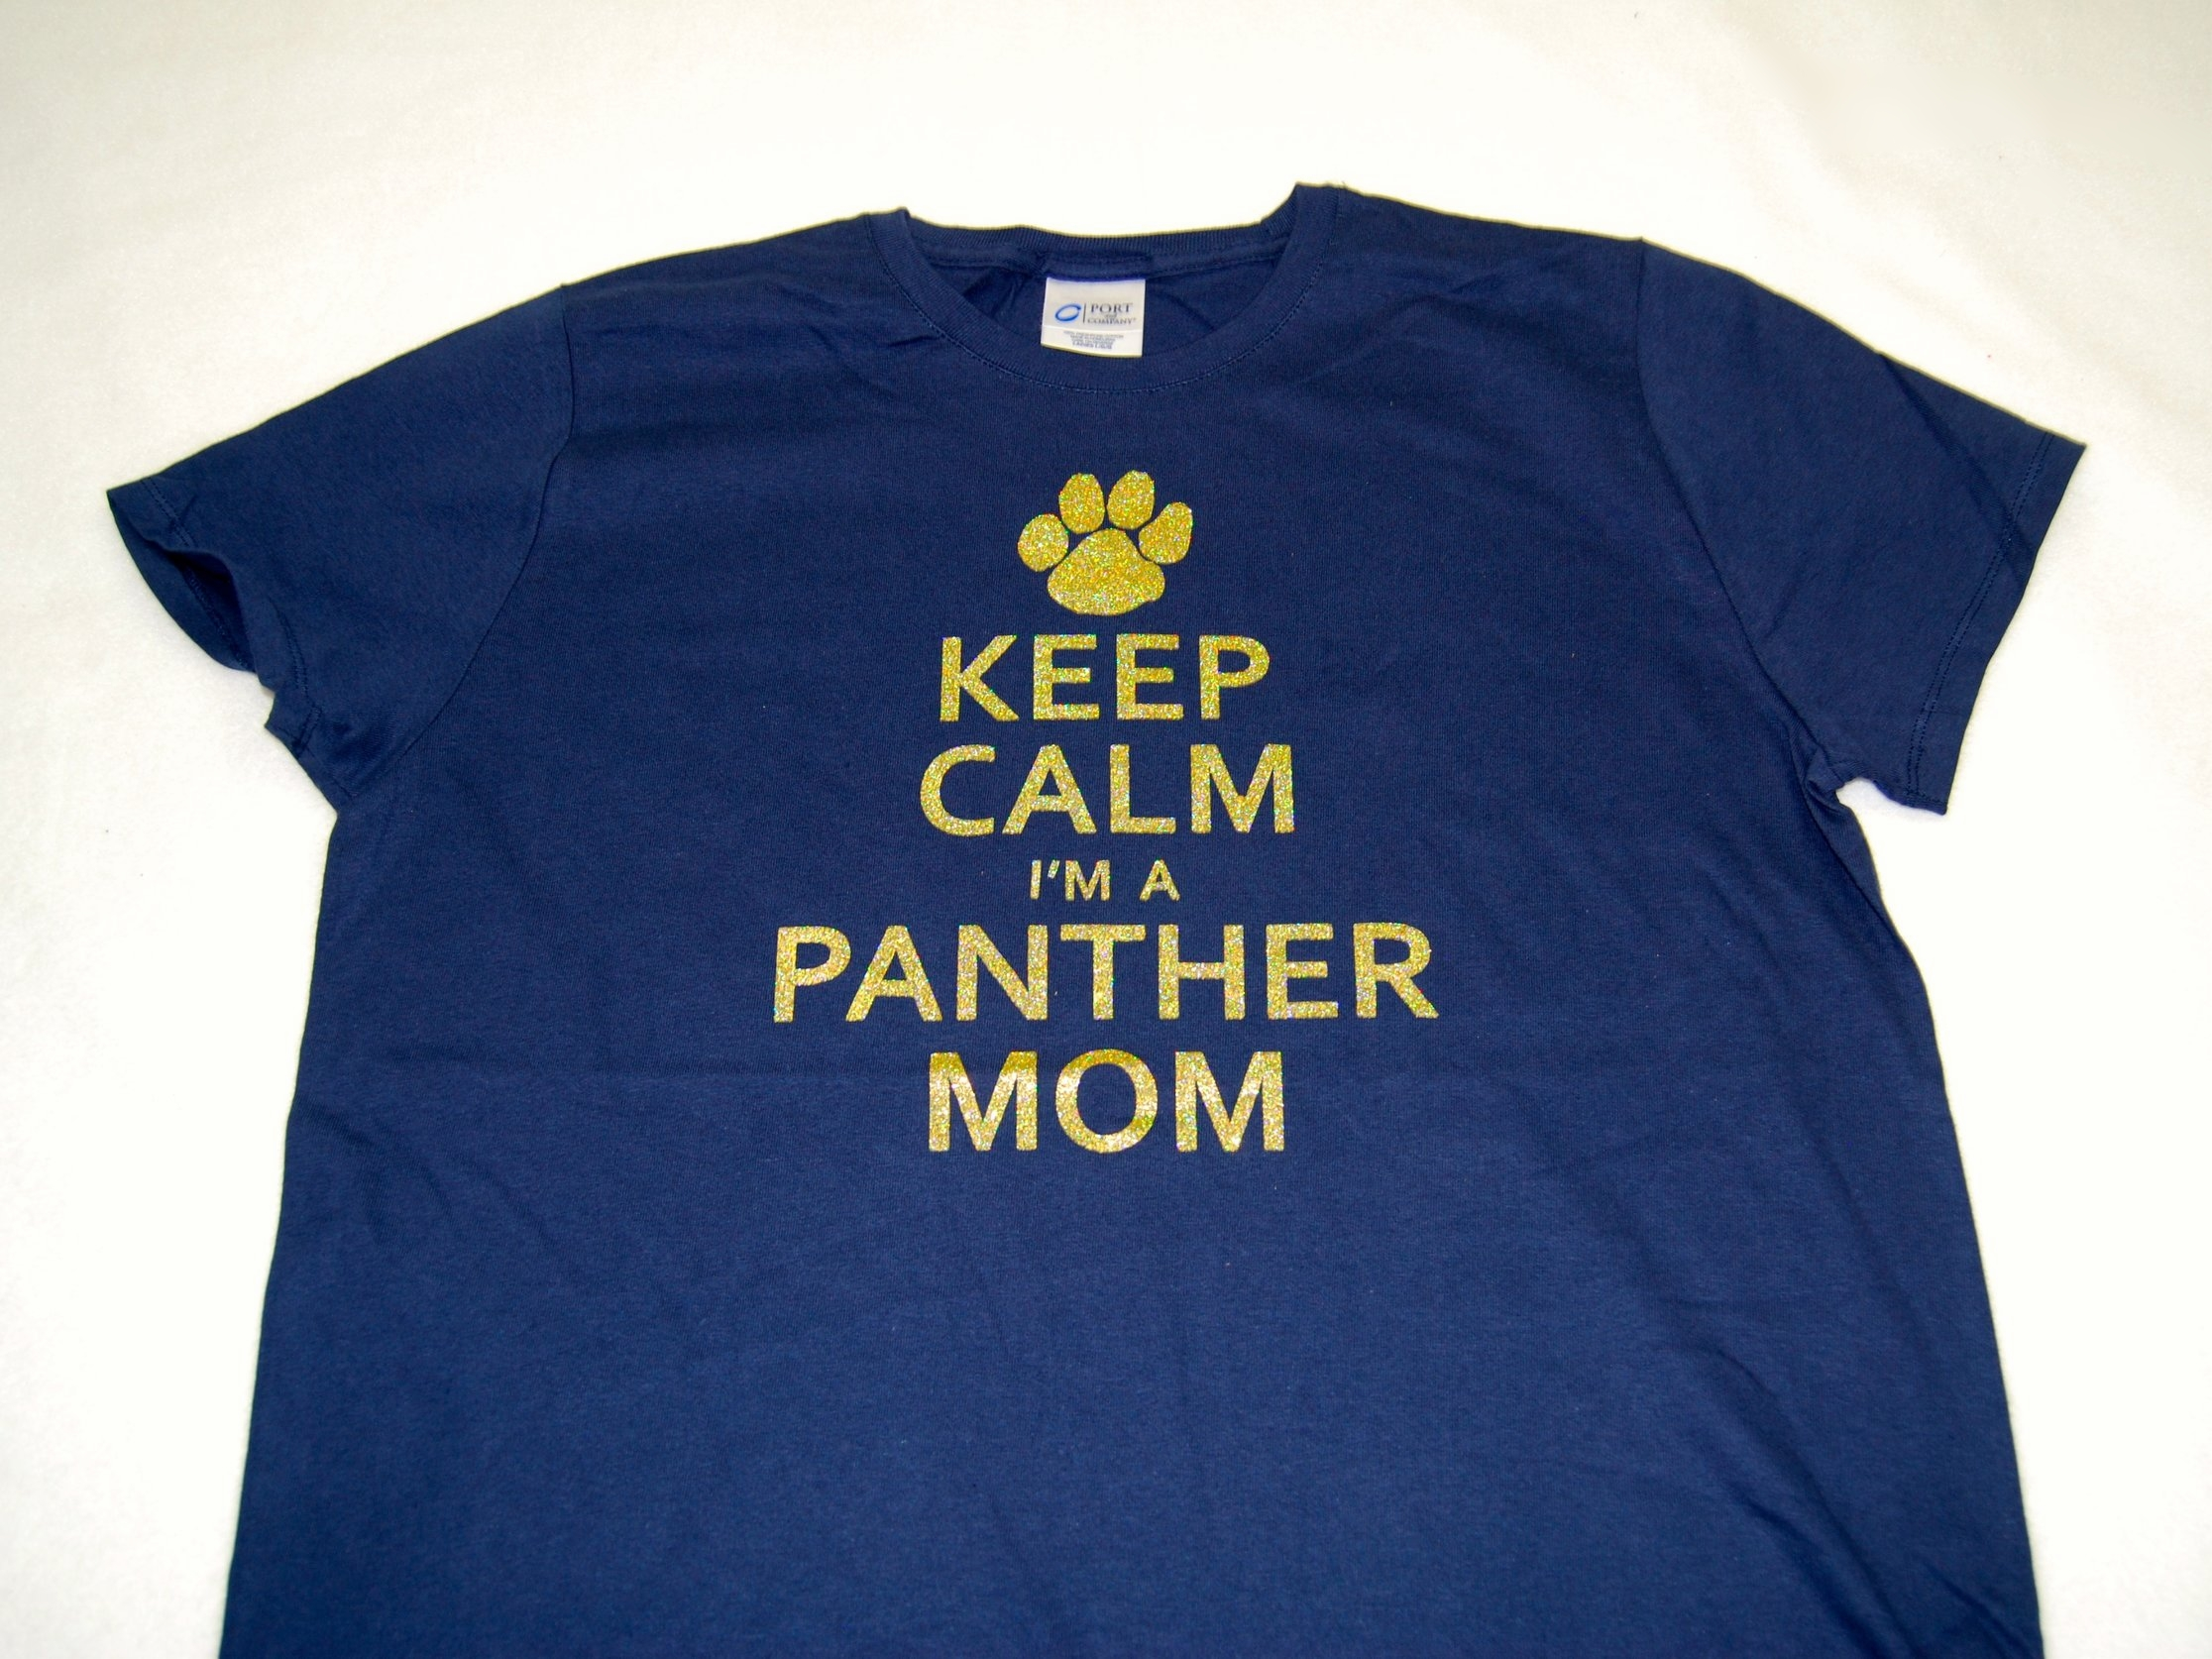 Keep Calm I'm A Panther Mom in gold glitter